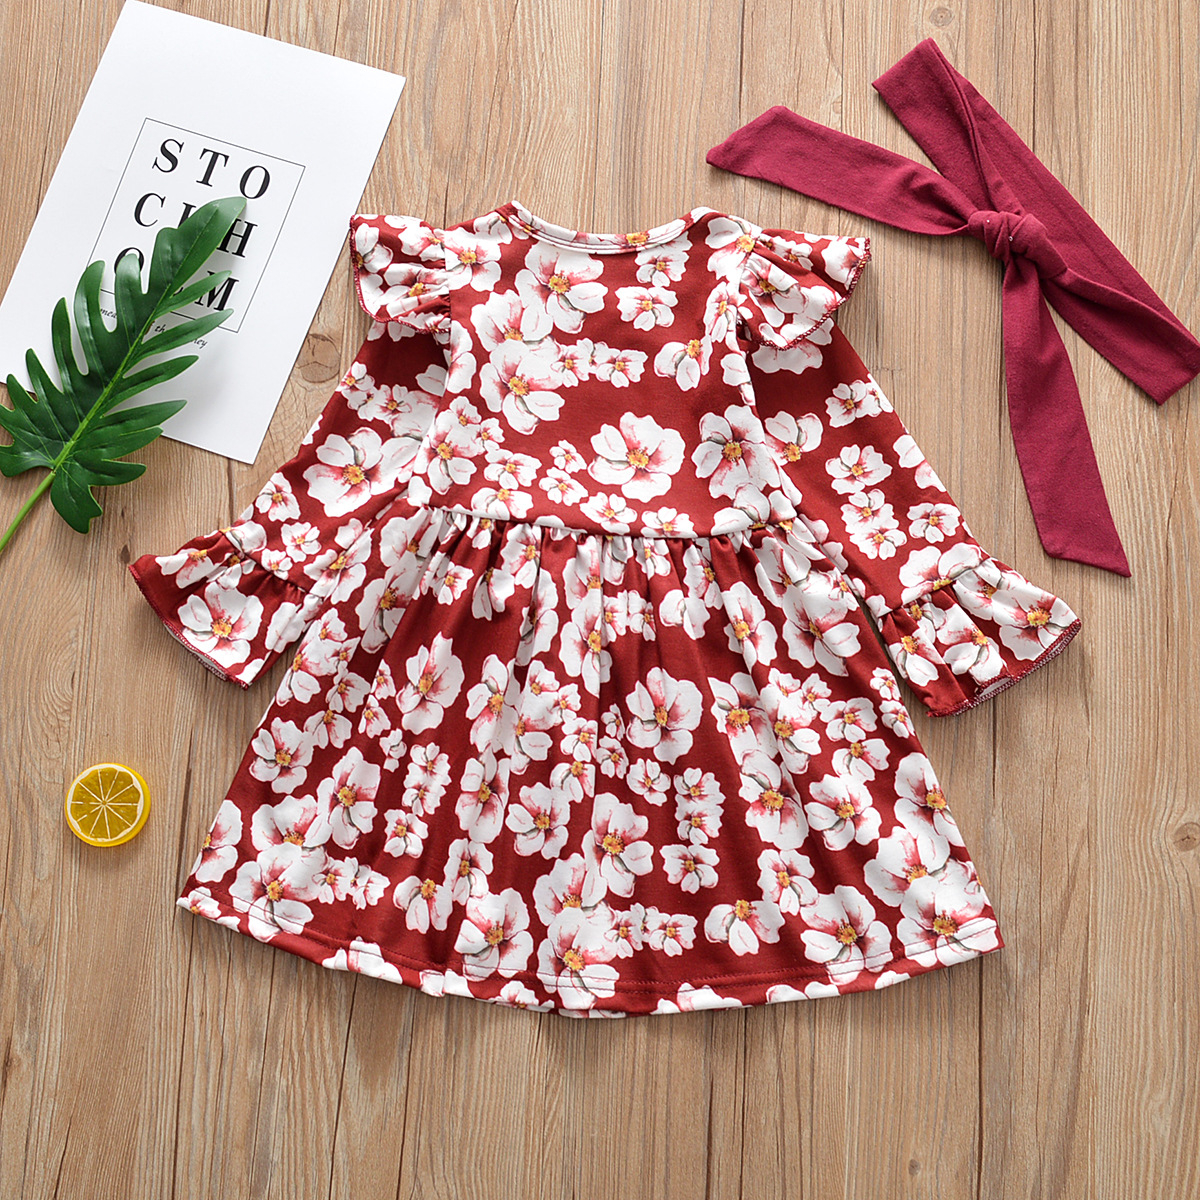 2019 New Style little girls Dress Pink Floral Casual Girl's Dresses